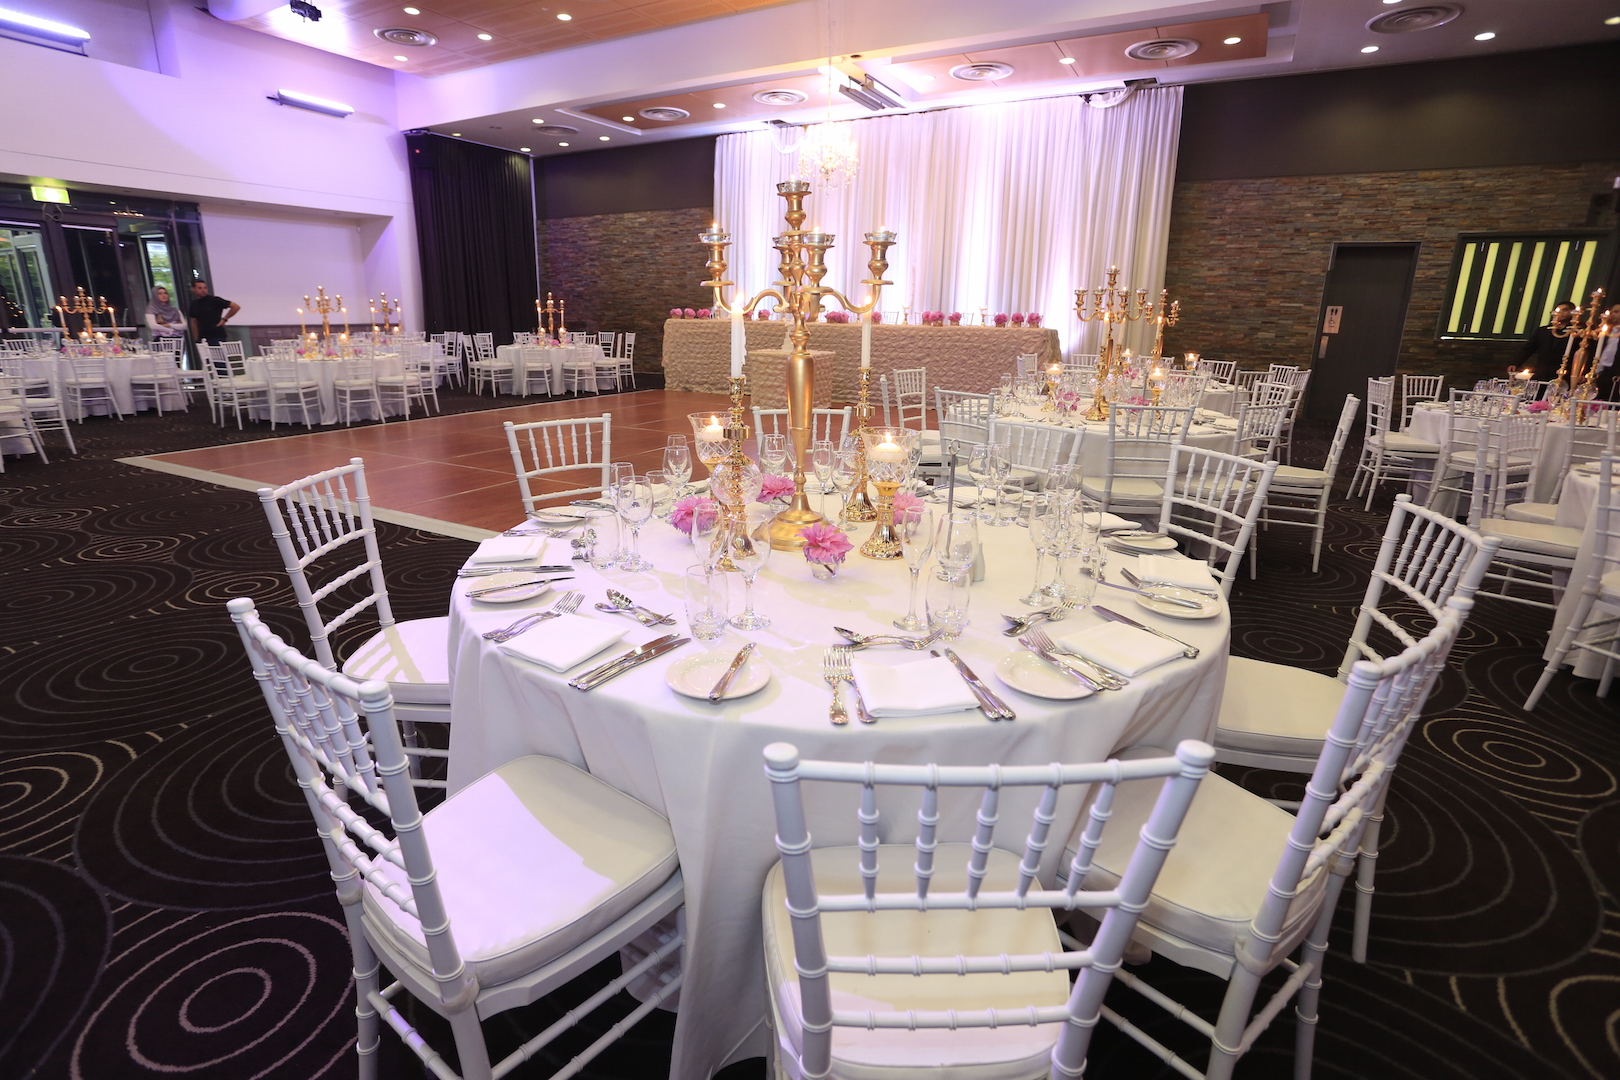 Waterview - Park Room - Guest table centrepiece - 5 arm gold candelabra with tea lights, gold candle sticks, gold goblets with floating candles, florals and white tiffany chairs - Image 3.JPG